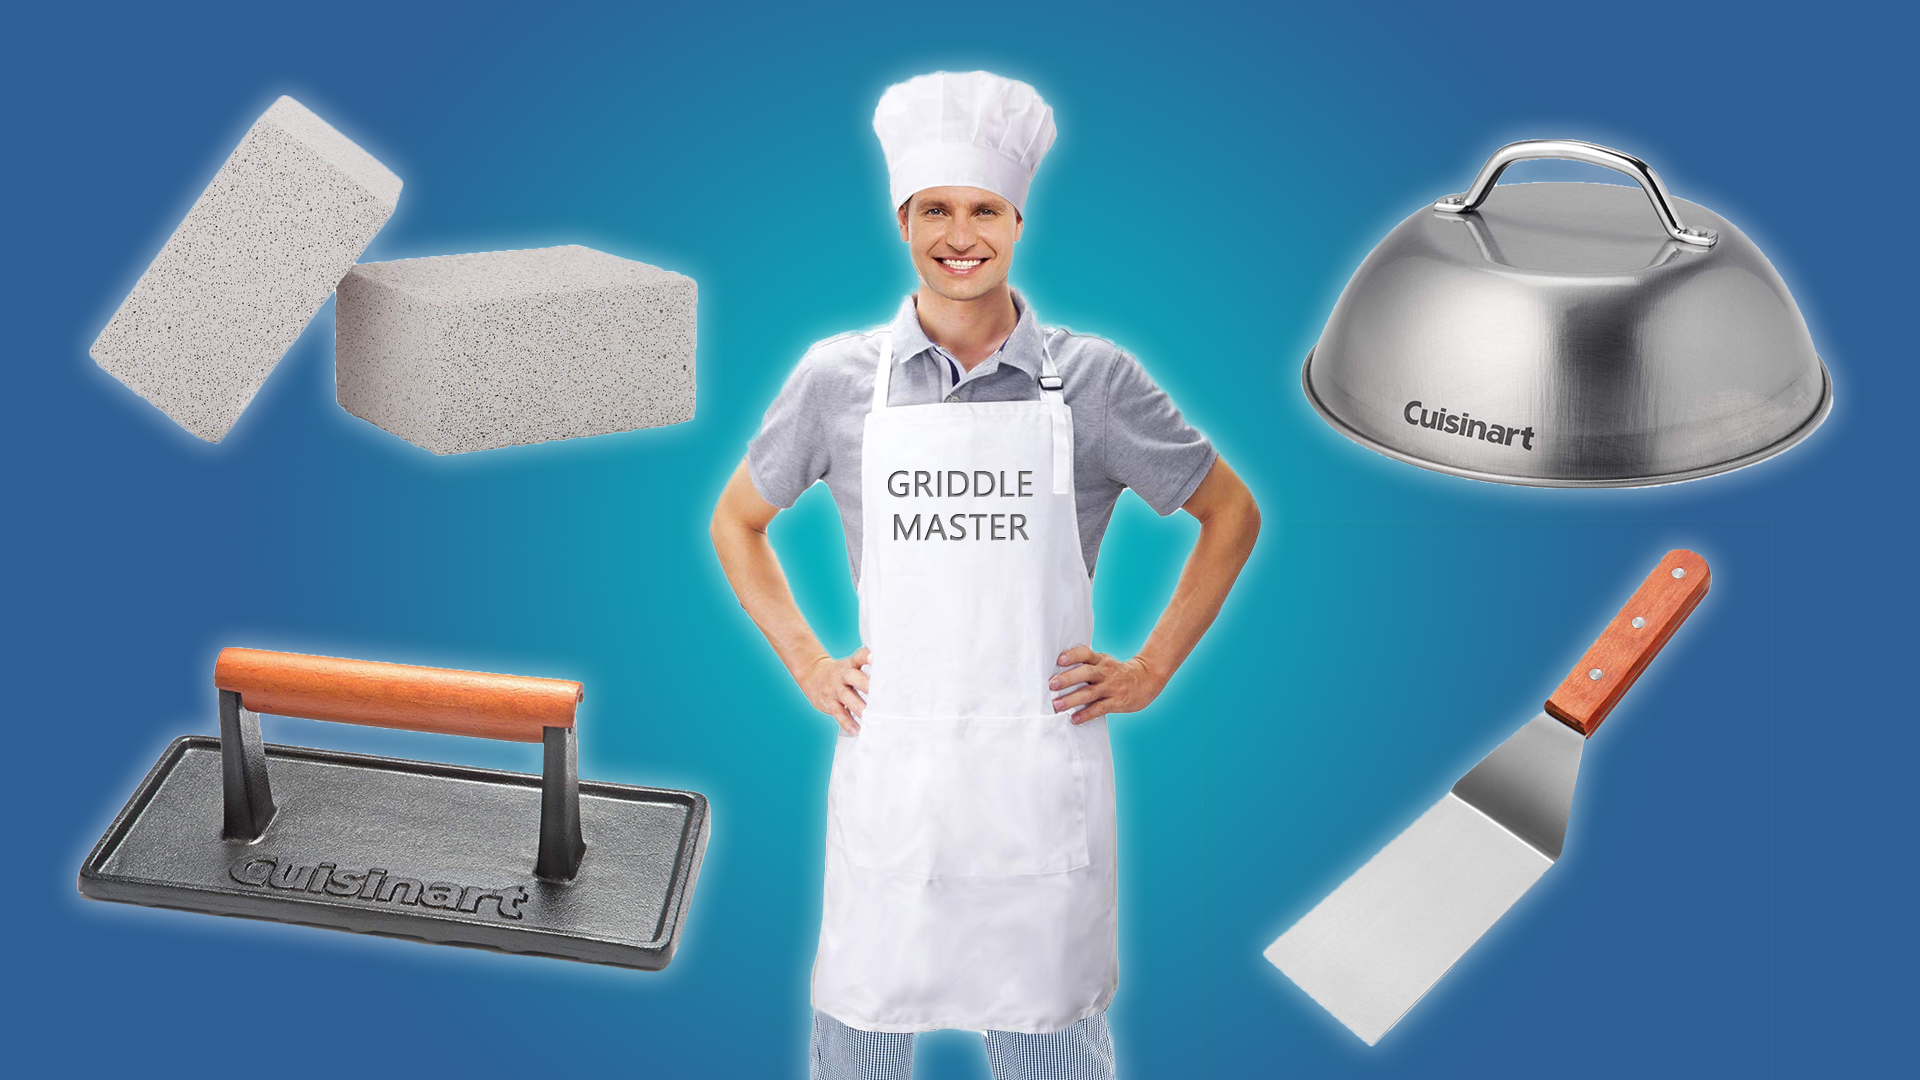 A certified griddle master with the tools of the trade